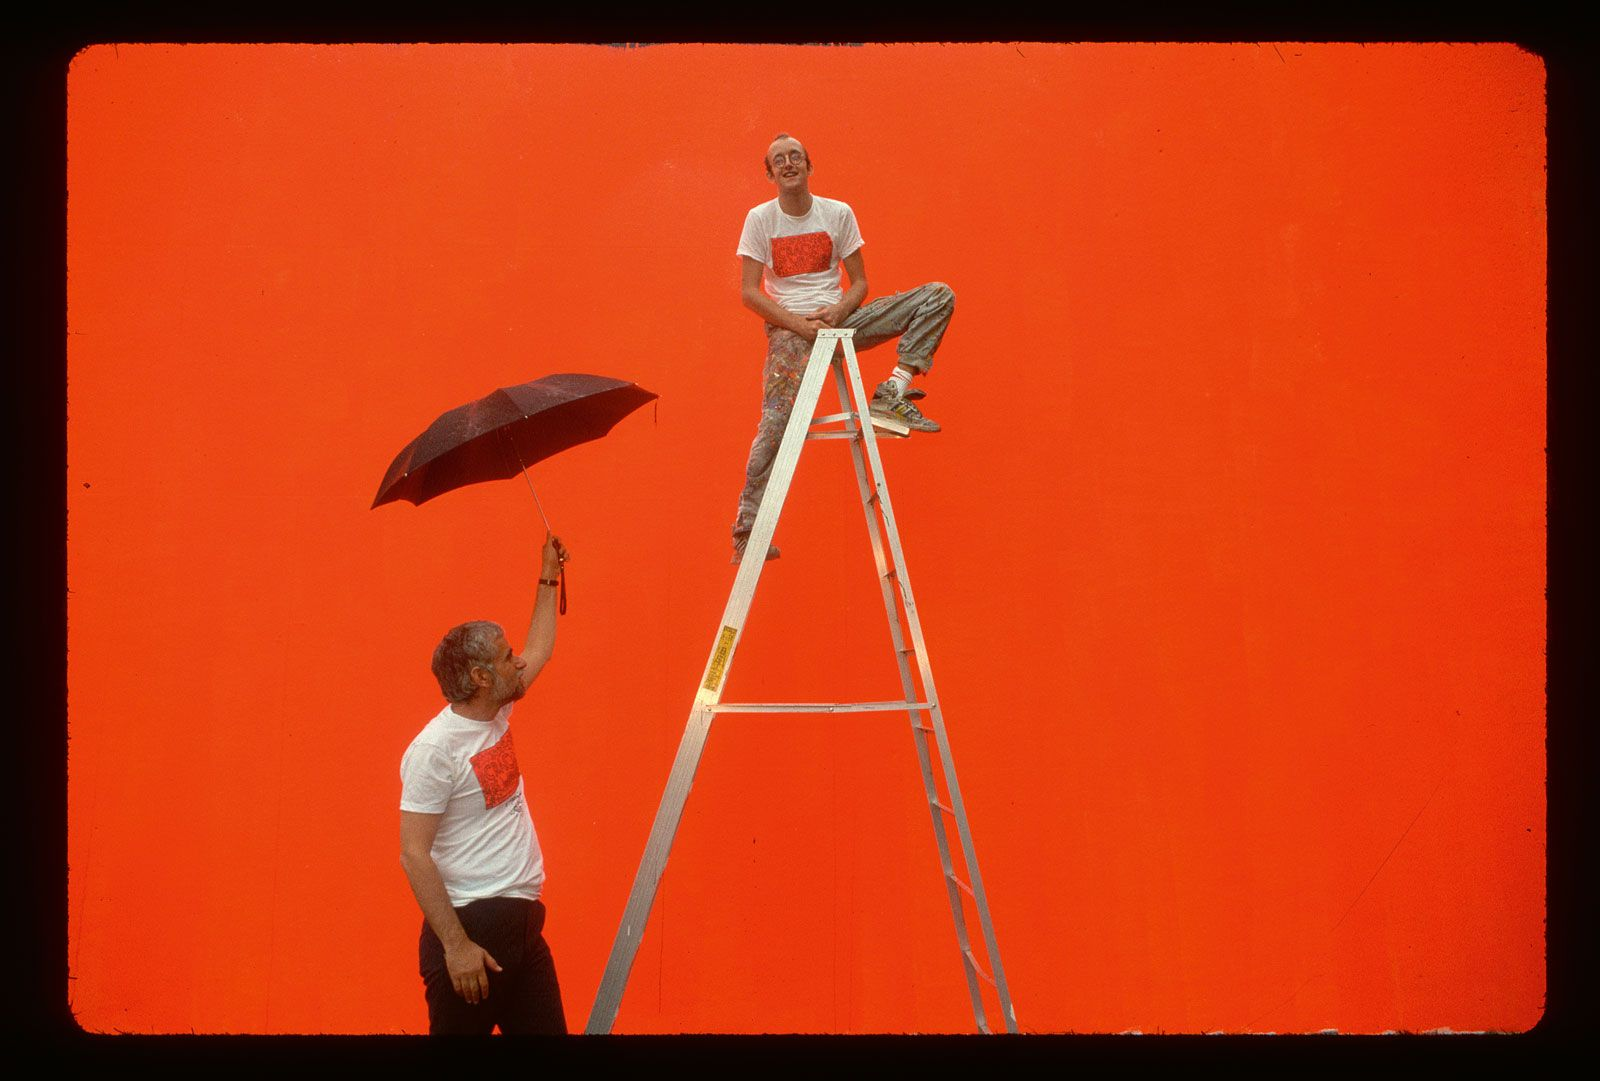 Keith Haring on a ladder, in front of the bright orange undercoat on which he would paint his mural Crack is Wack, with the New York Park Commissioner Henry Stern holding an umbrella